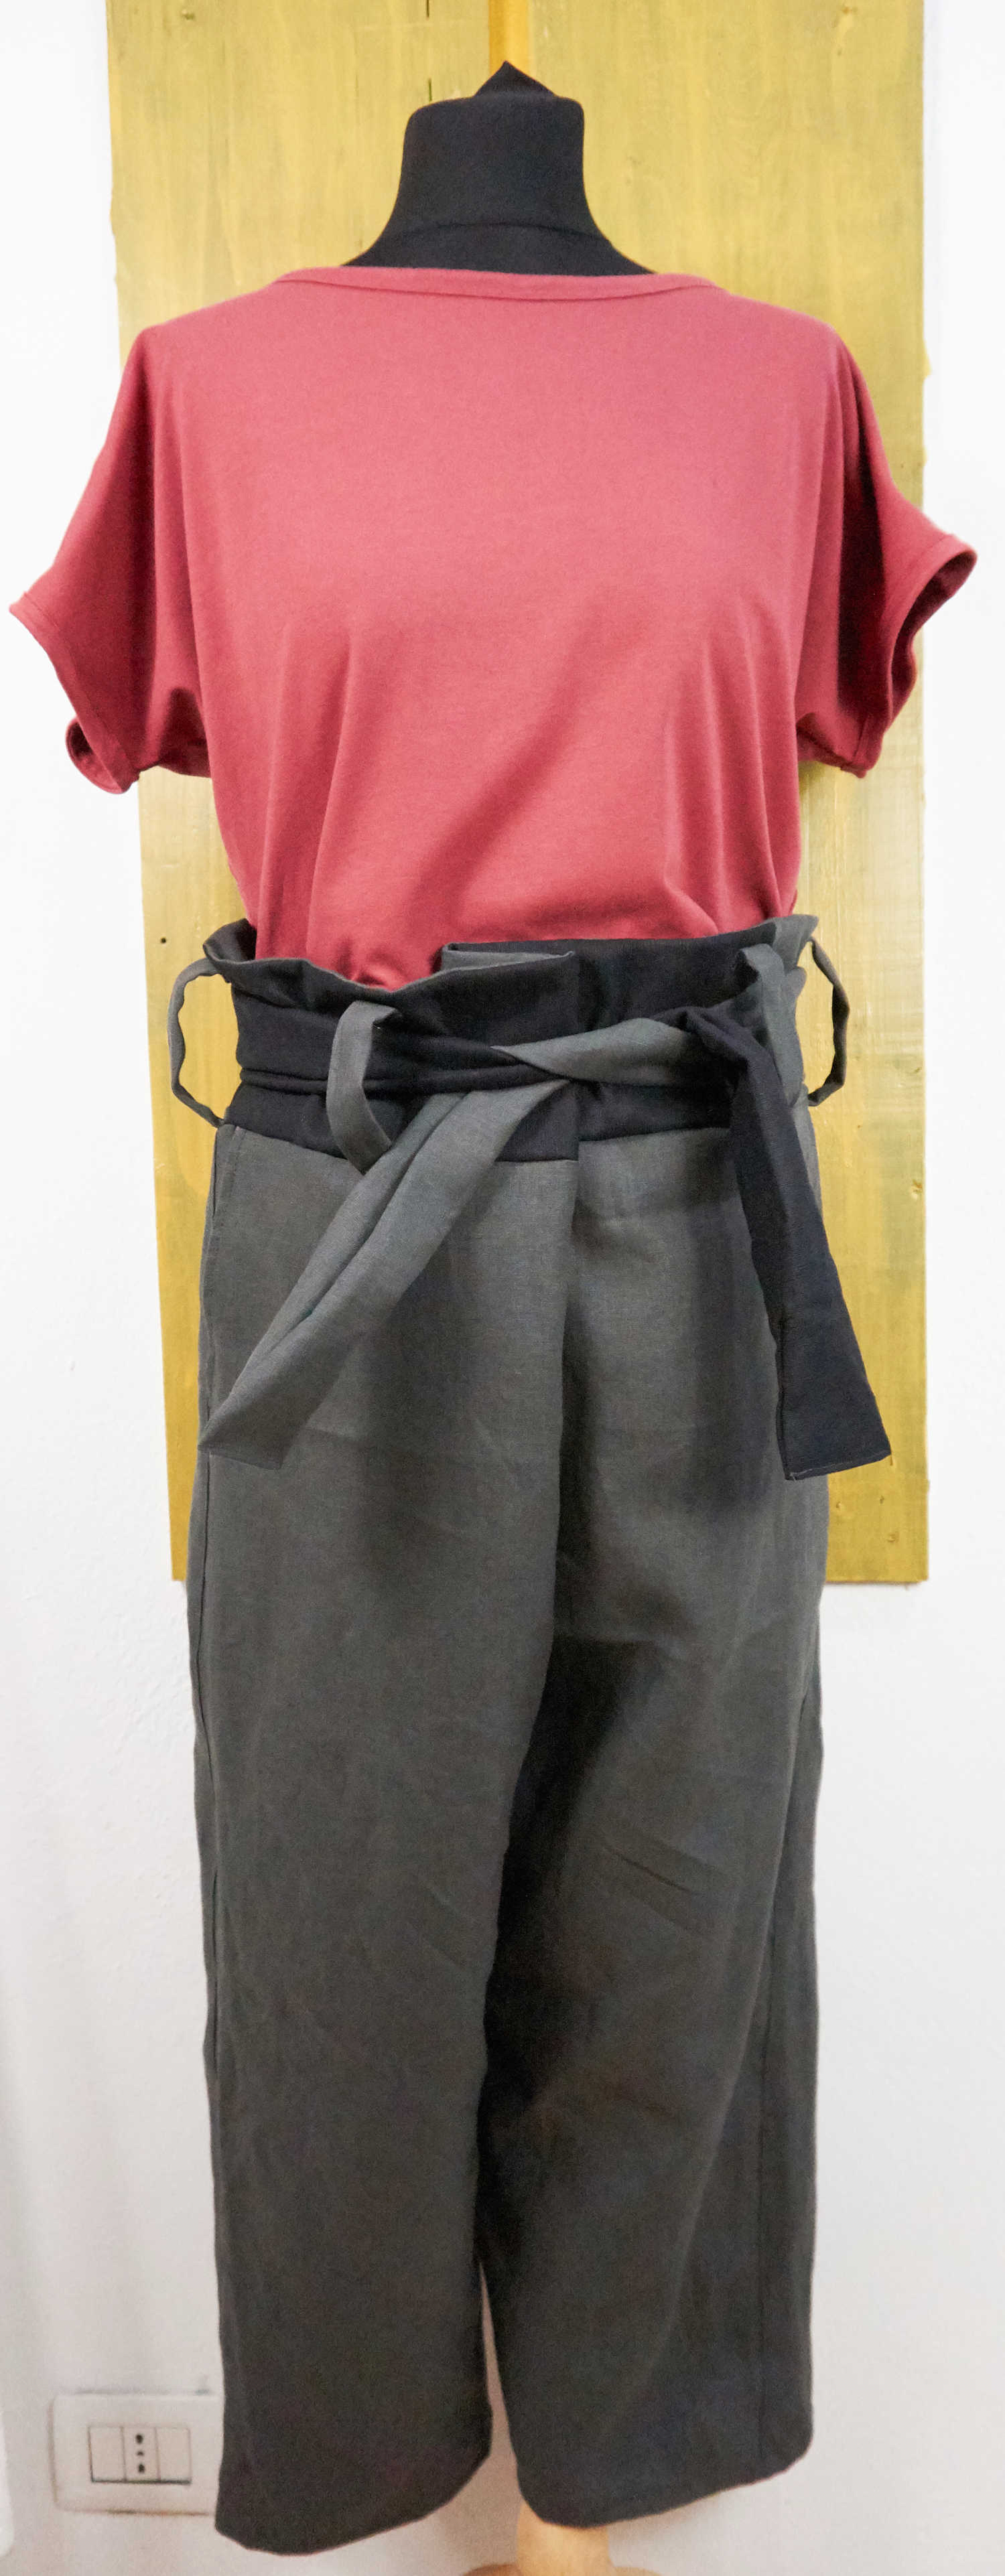 trousers with inserts and lace closure